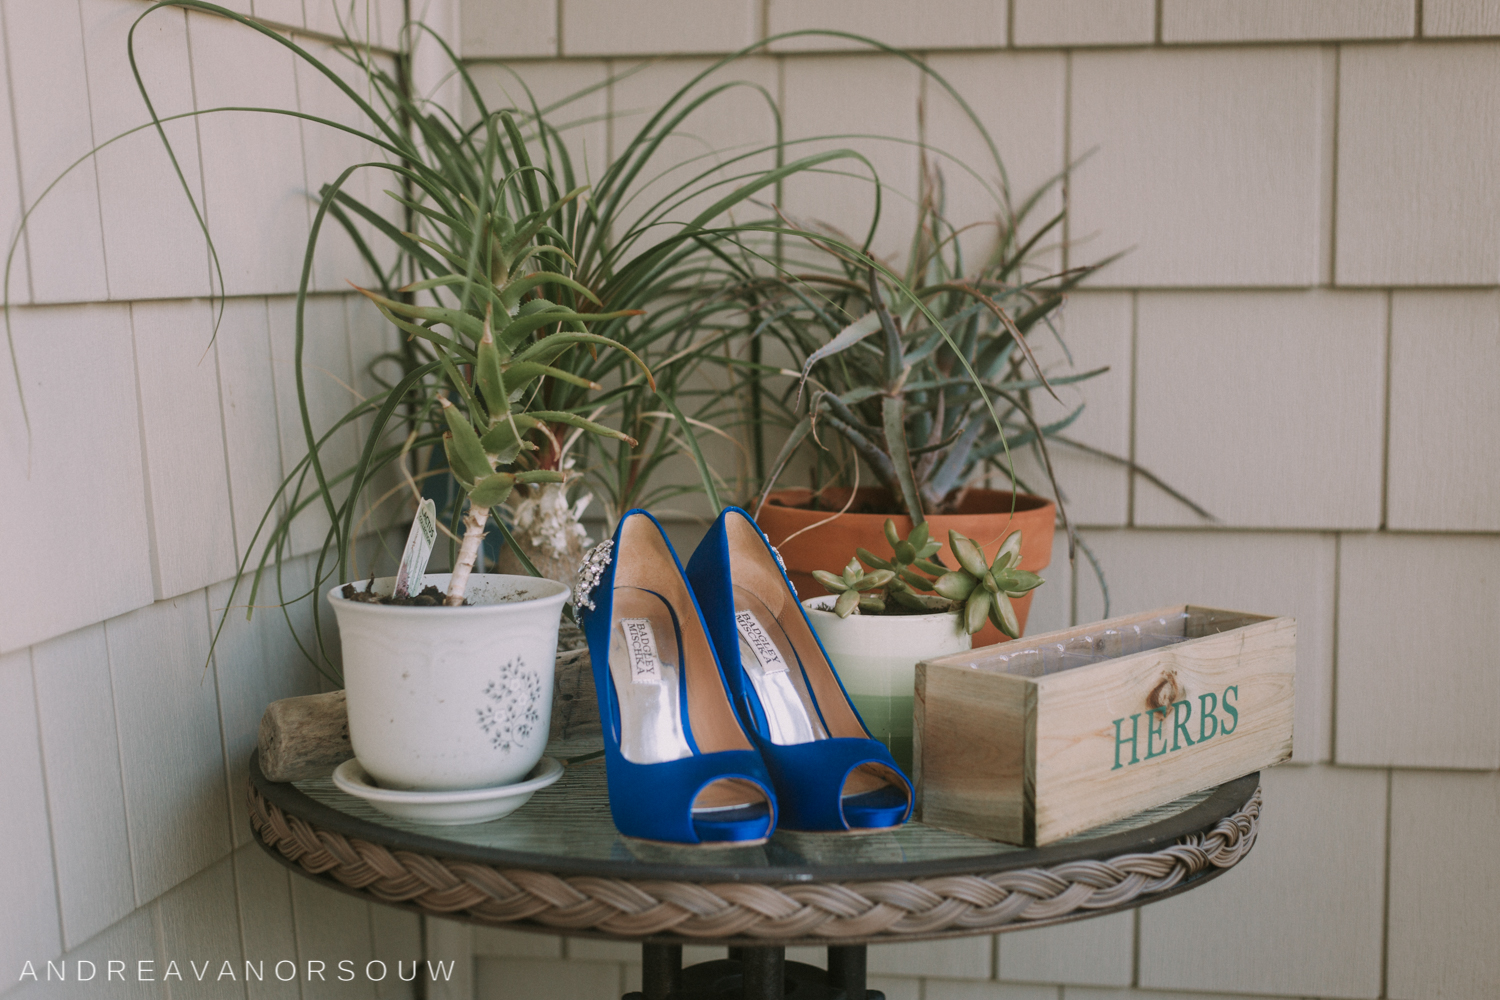 pawtucket_country_club_wedding_outdoors_rhode_island_new_england_connecticut_summer_Wedding_natural_photographer_photography_shoes_blue_plants_herbs.jpg